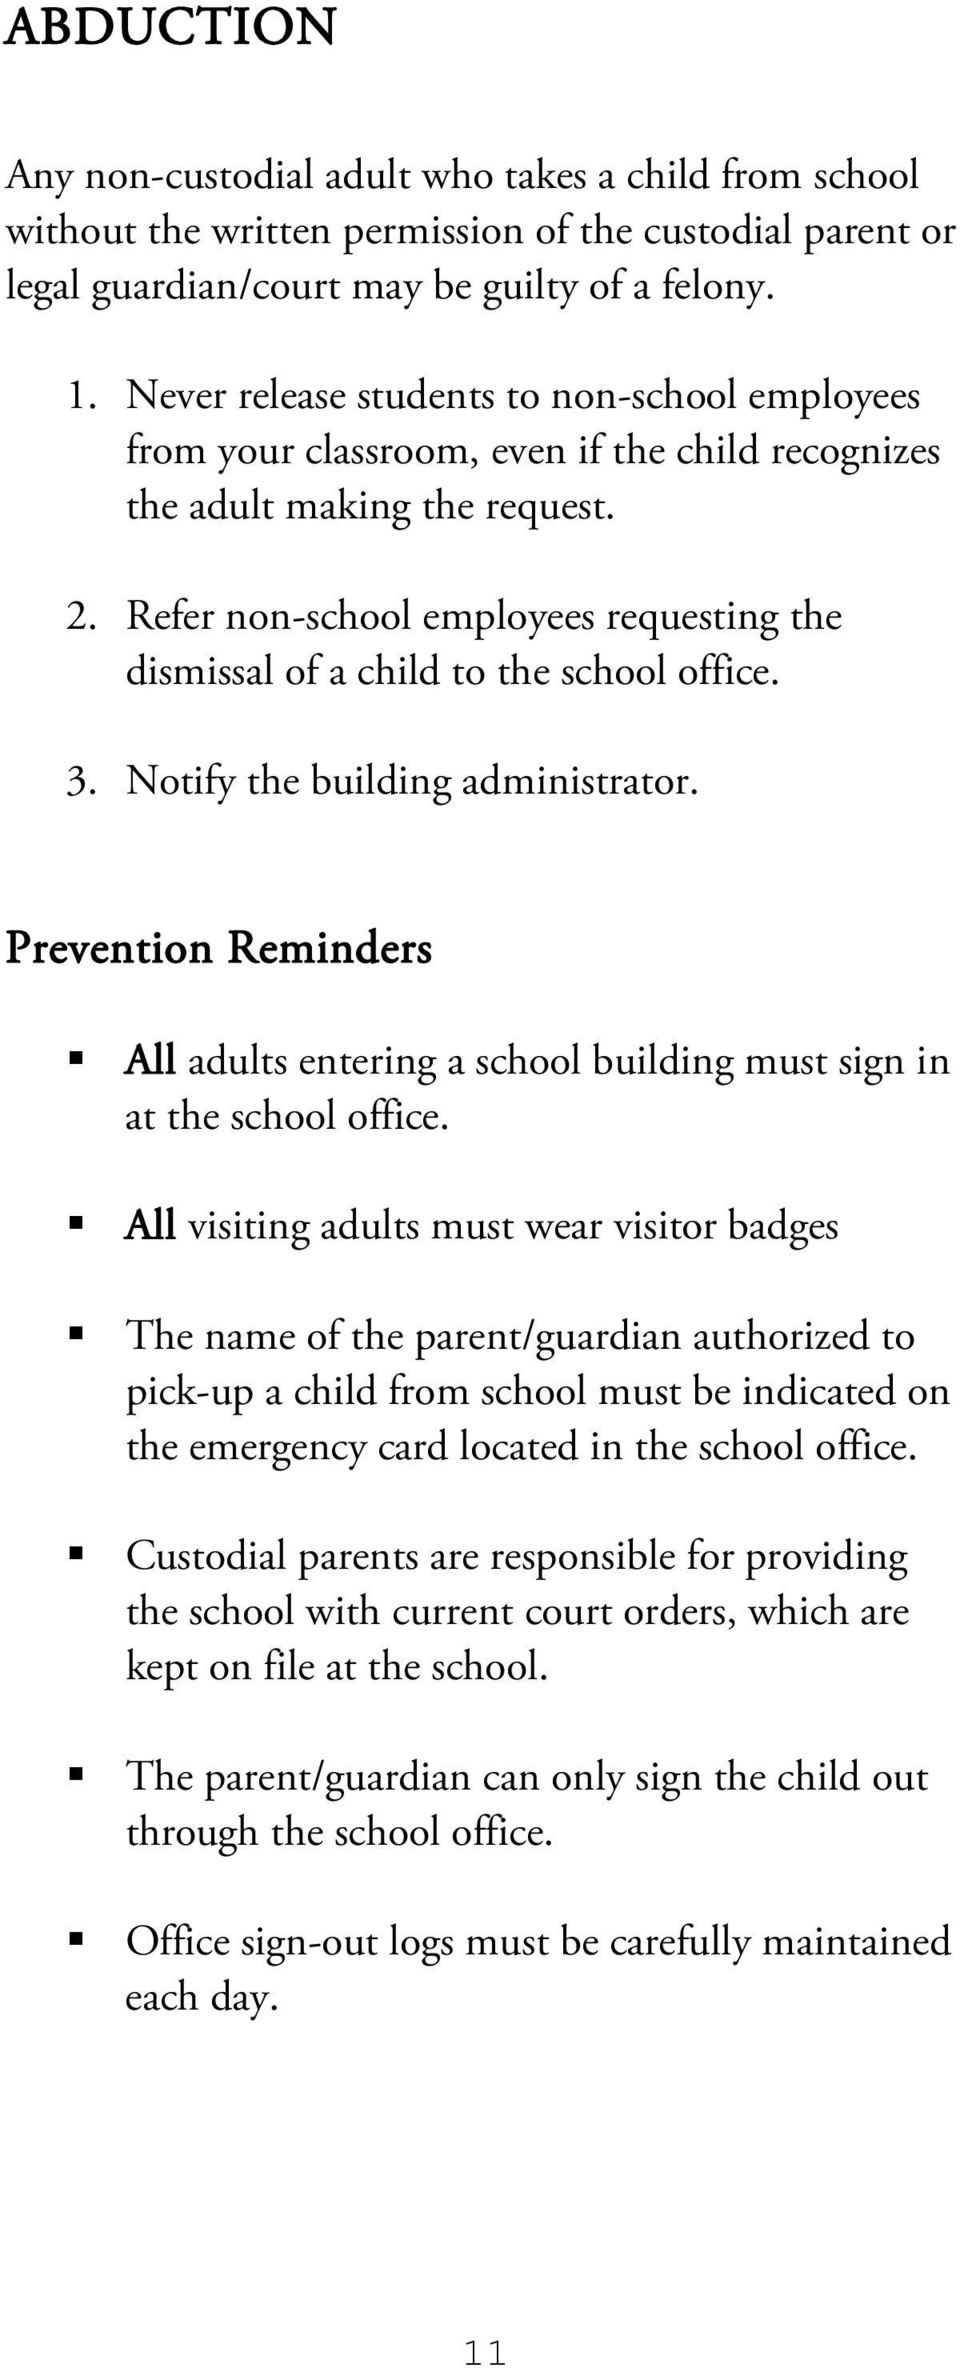 Refer non-school employees requesting the dismissal of a child to the school office. 3. Notify the building administrator.